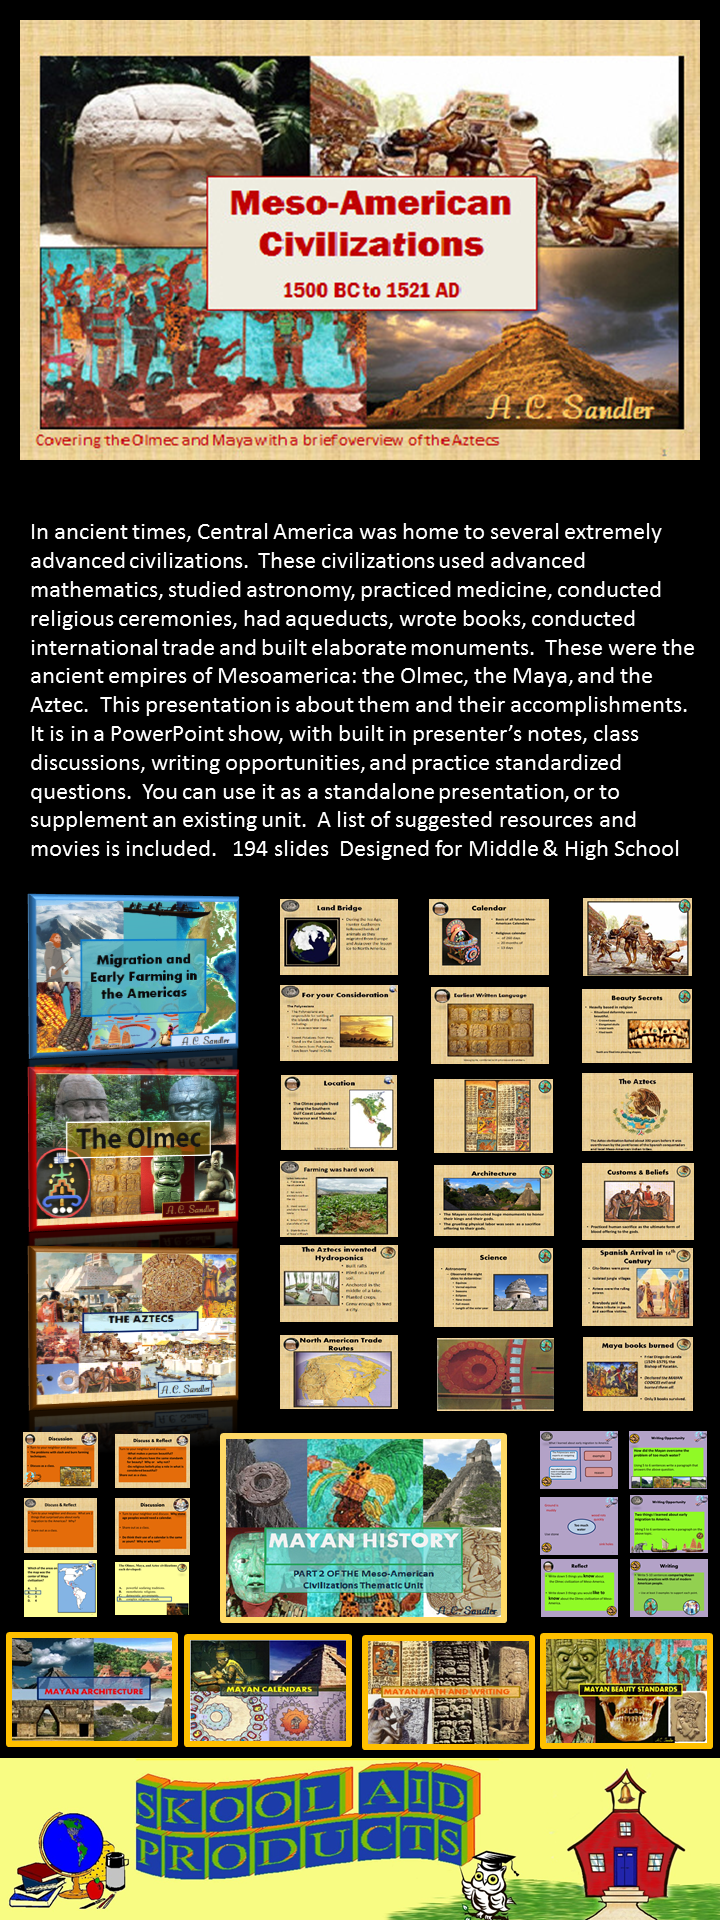 MESOAMERICAN CIVILIZATIONS PowerPoint Presentations ***THIS PRODUCT INCLUDES the OLMEC, MAYAN, and AZTEC presentations***from 1500 BC- 1521 AD covering Geography, Religion, Politics, Economics, and Social Structure. It is full of class discussions, writing opportunities, and test practice questions. This presentation is a great supplement for any unit about early American Civilizations. 194 slides C.C.S. RH.6-8.1, RH.6-8.5, RH.6-8.7, WHST.6-8.10, SL.7.2, SL.7.1